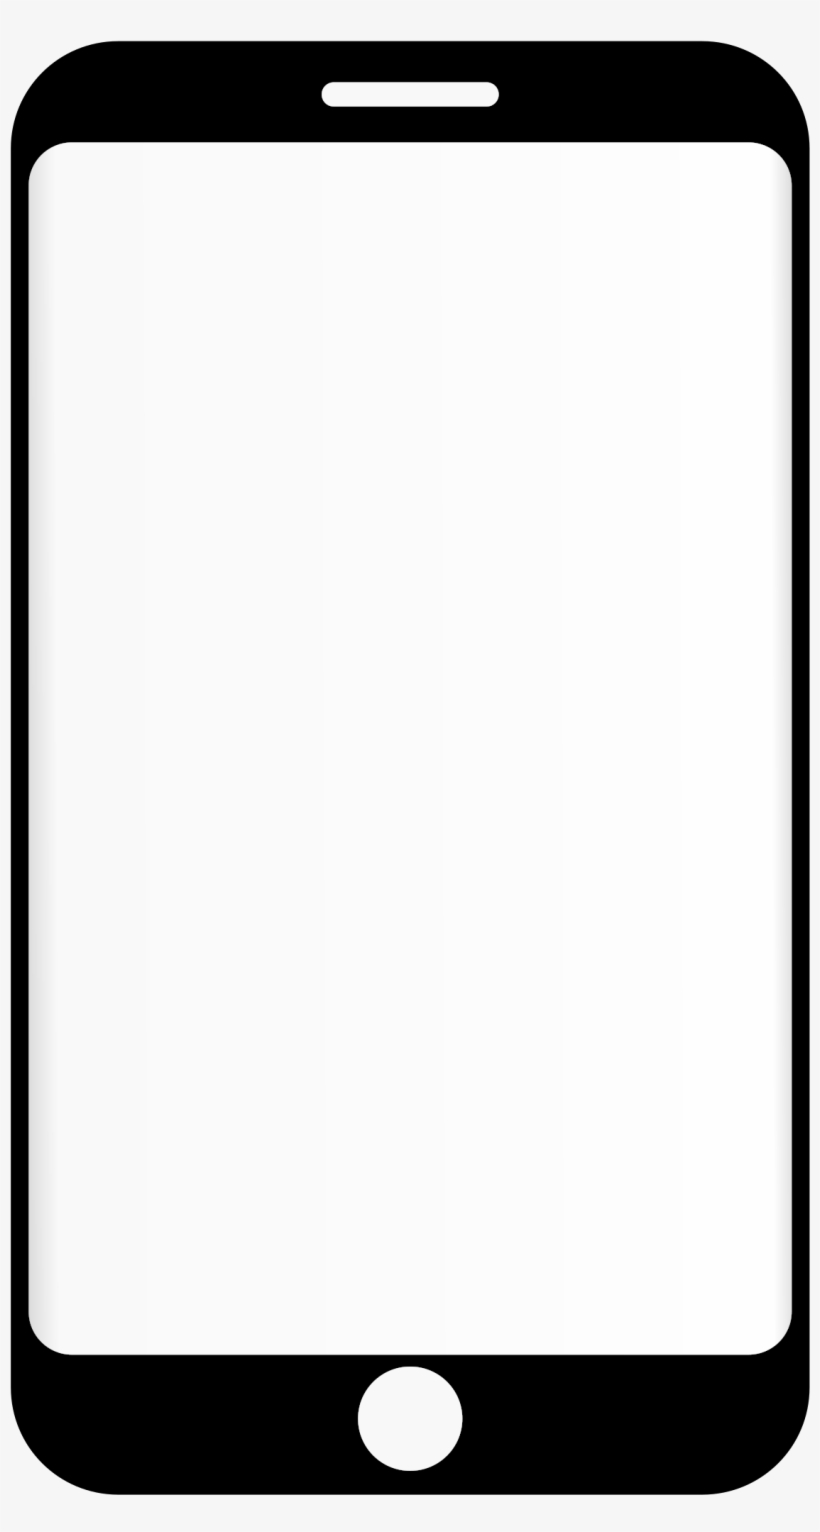 Android phone clipart transparent clipart freeuse stock Android Transparent Png - Phone Clipart Transparent PNG - 1600x2400 ... clipart freeuse stock